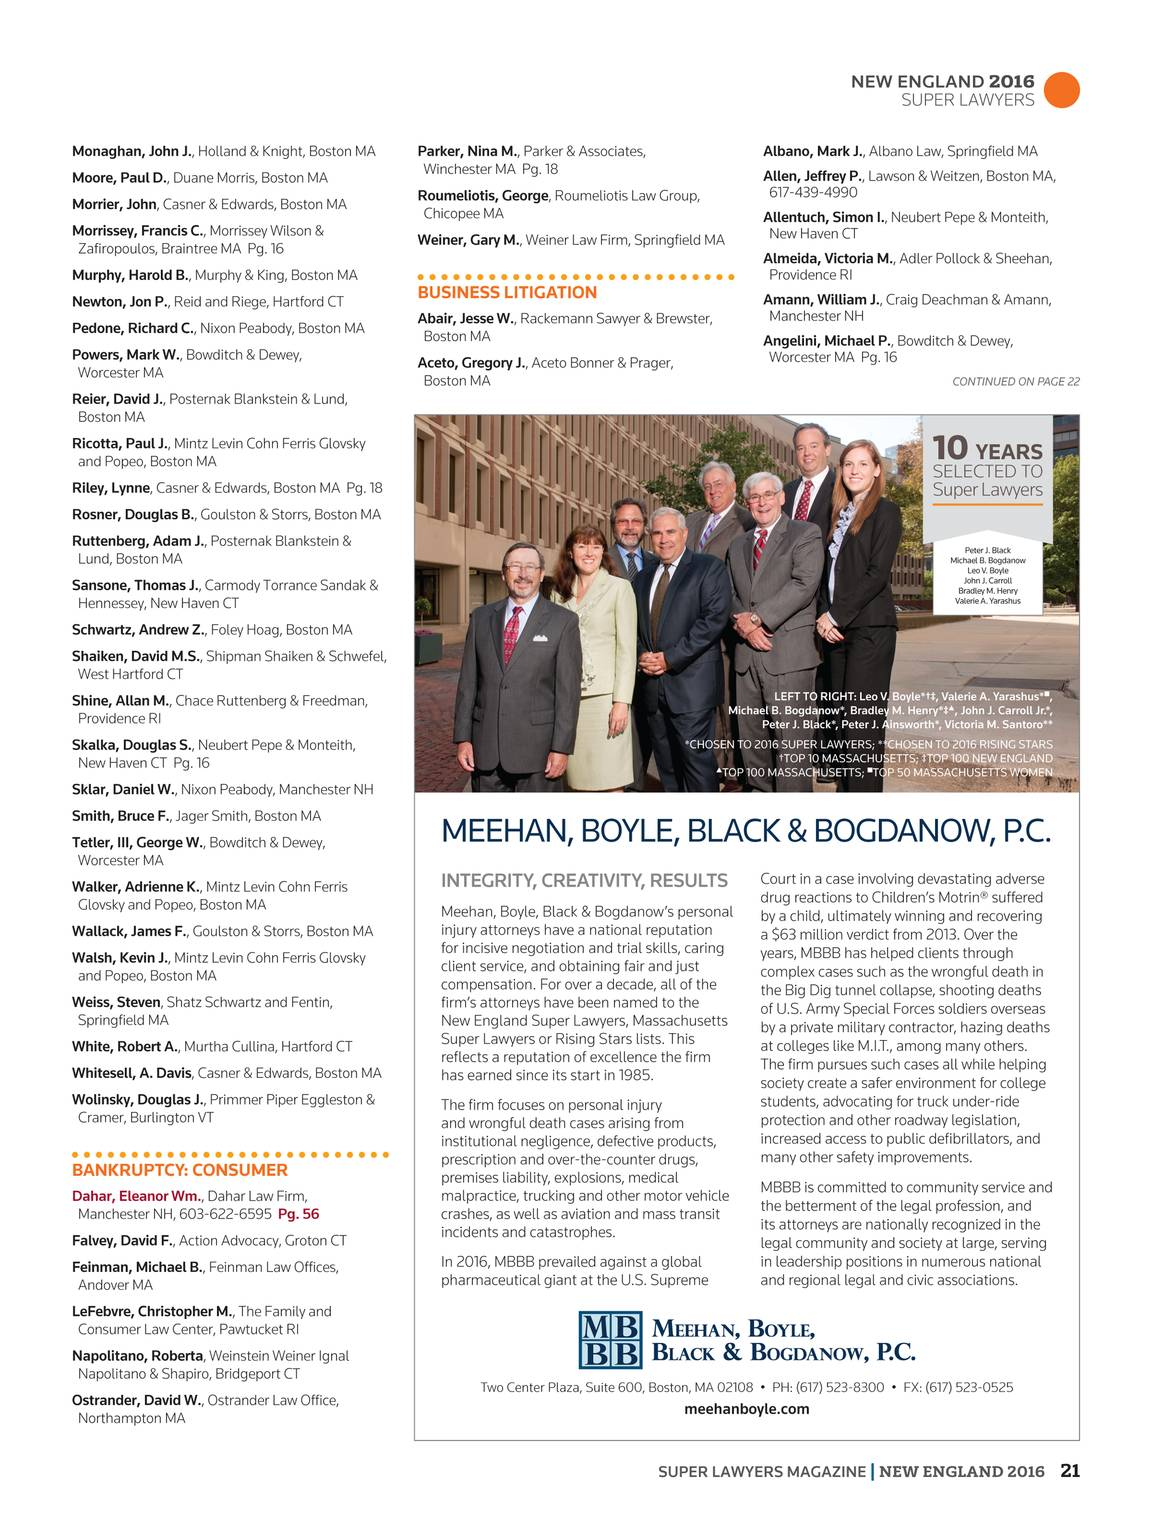 Super Lawyers - New England 2016 - page 20